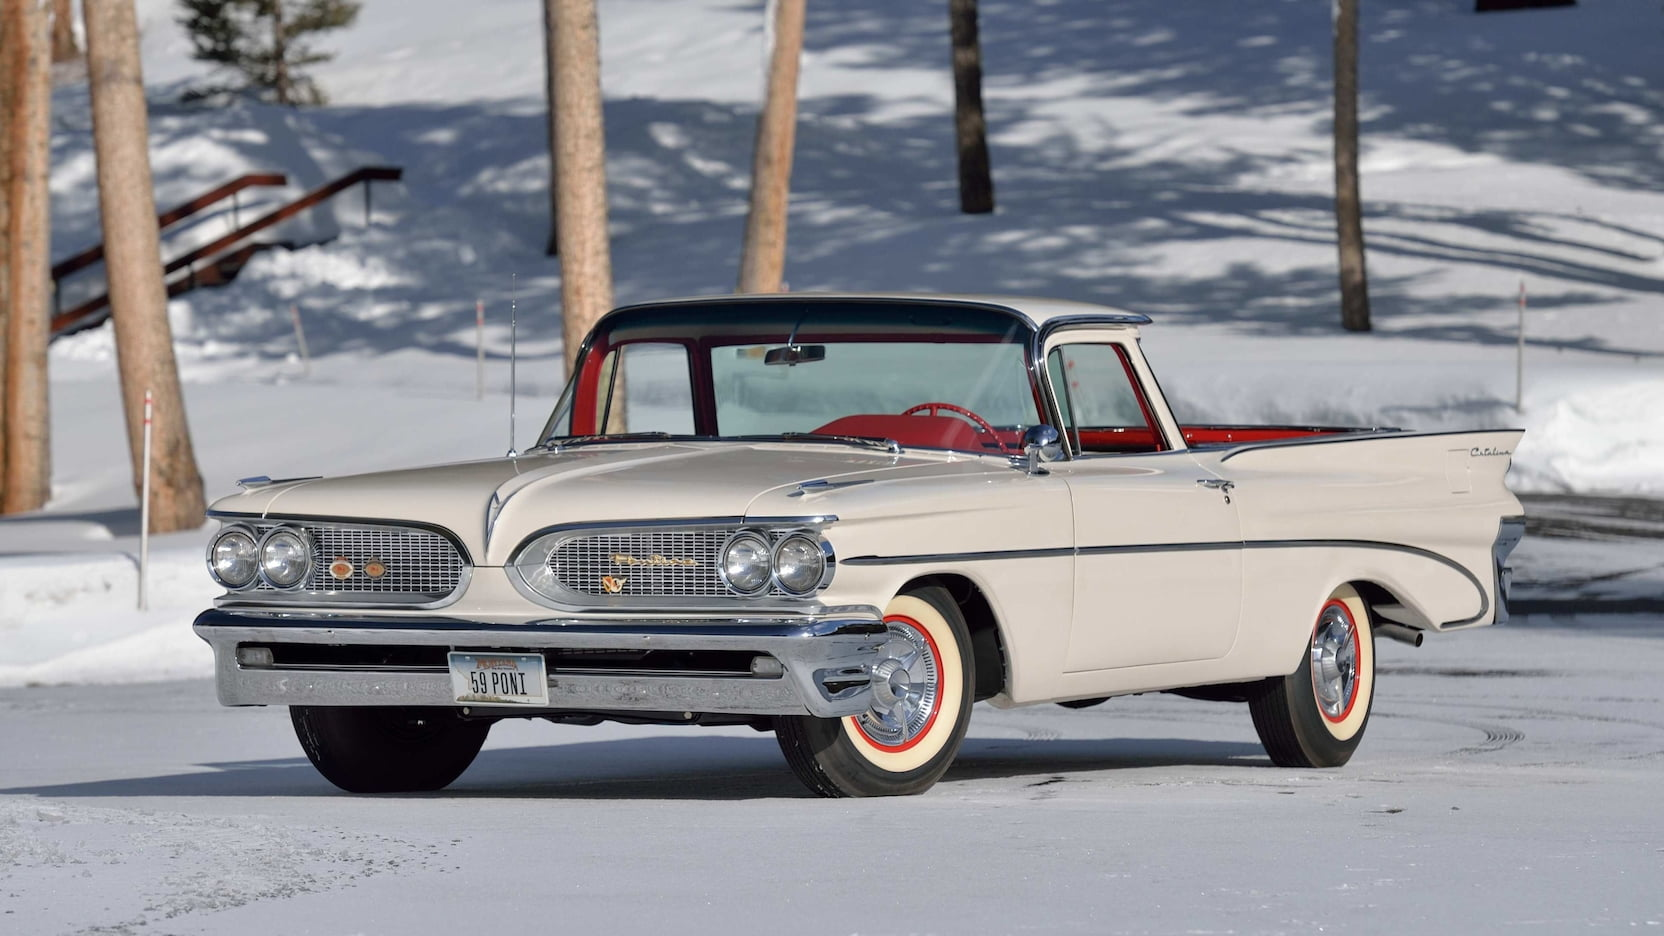 This 1959 Pontiac El Catalina is the ultimate ute unicorn thumbnail